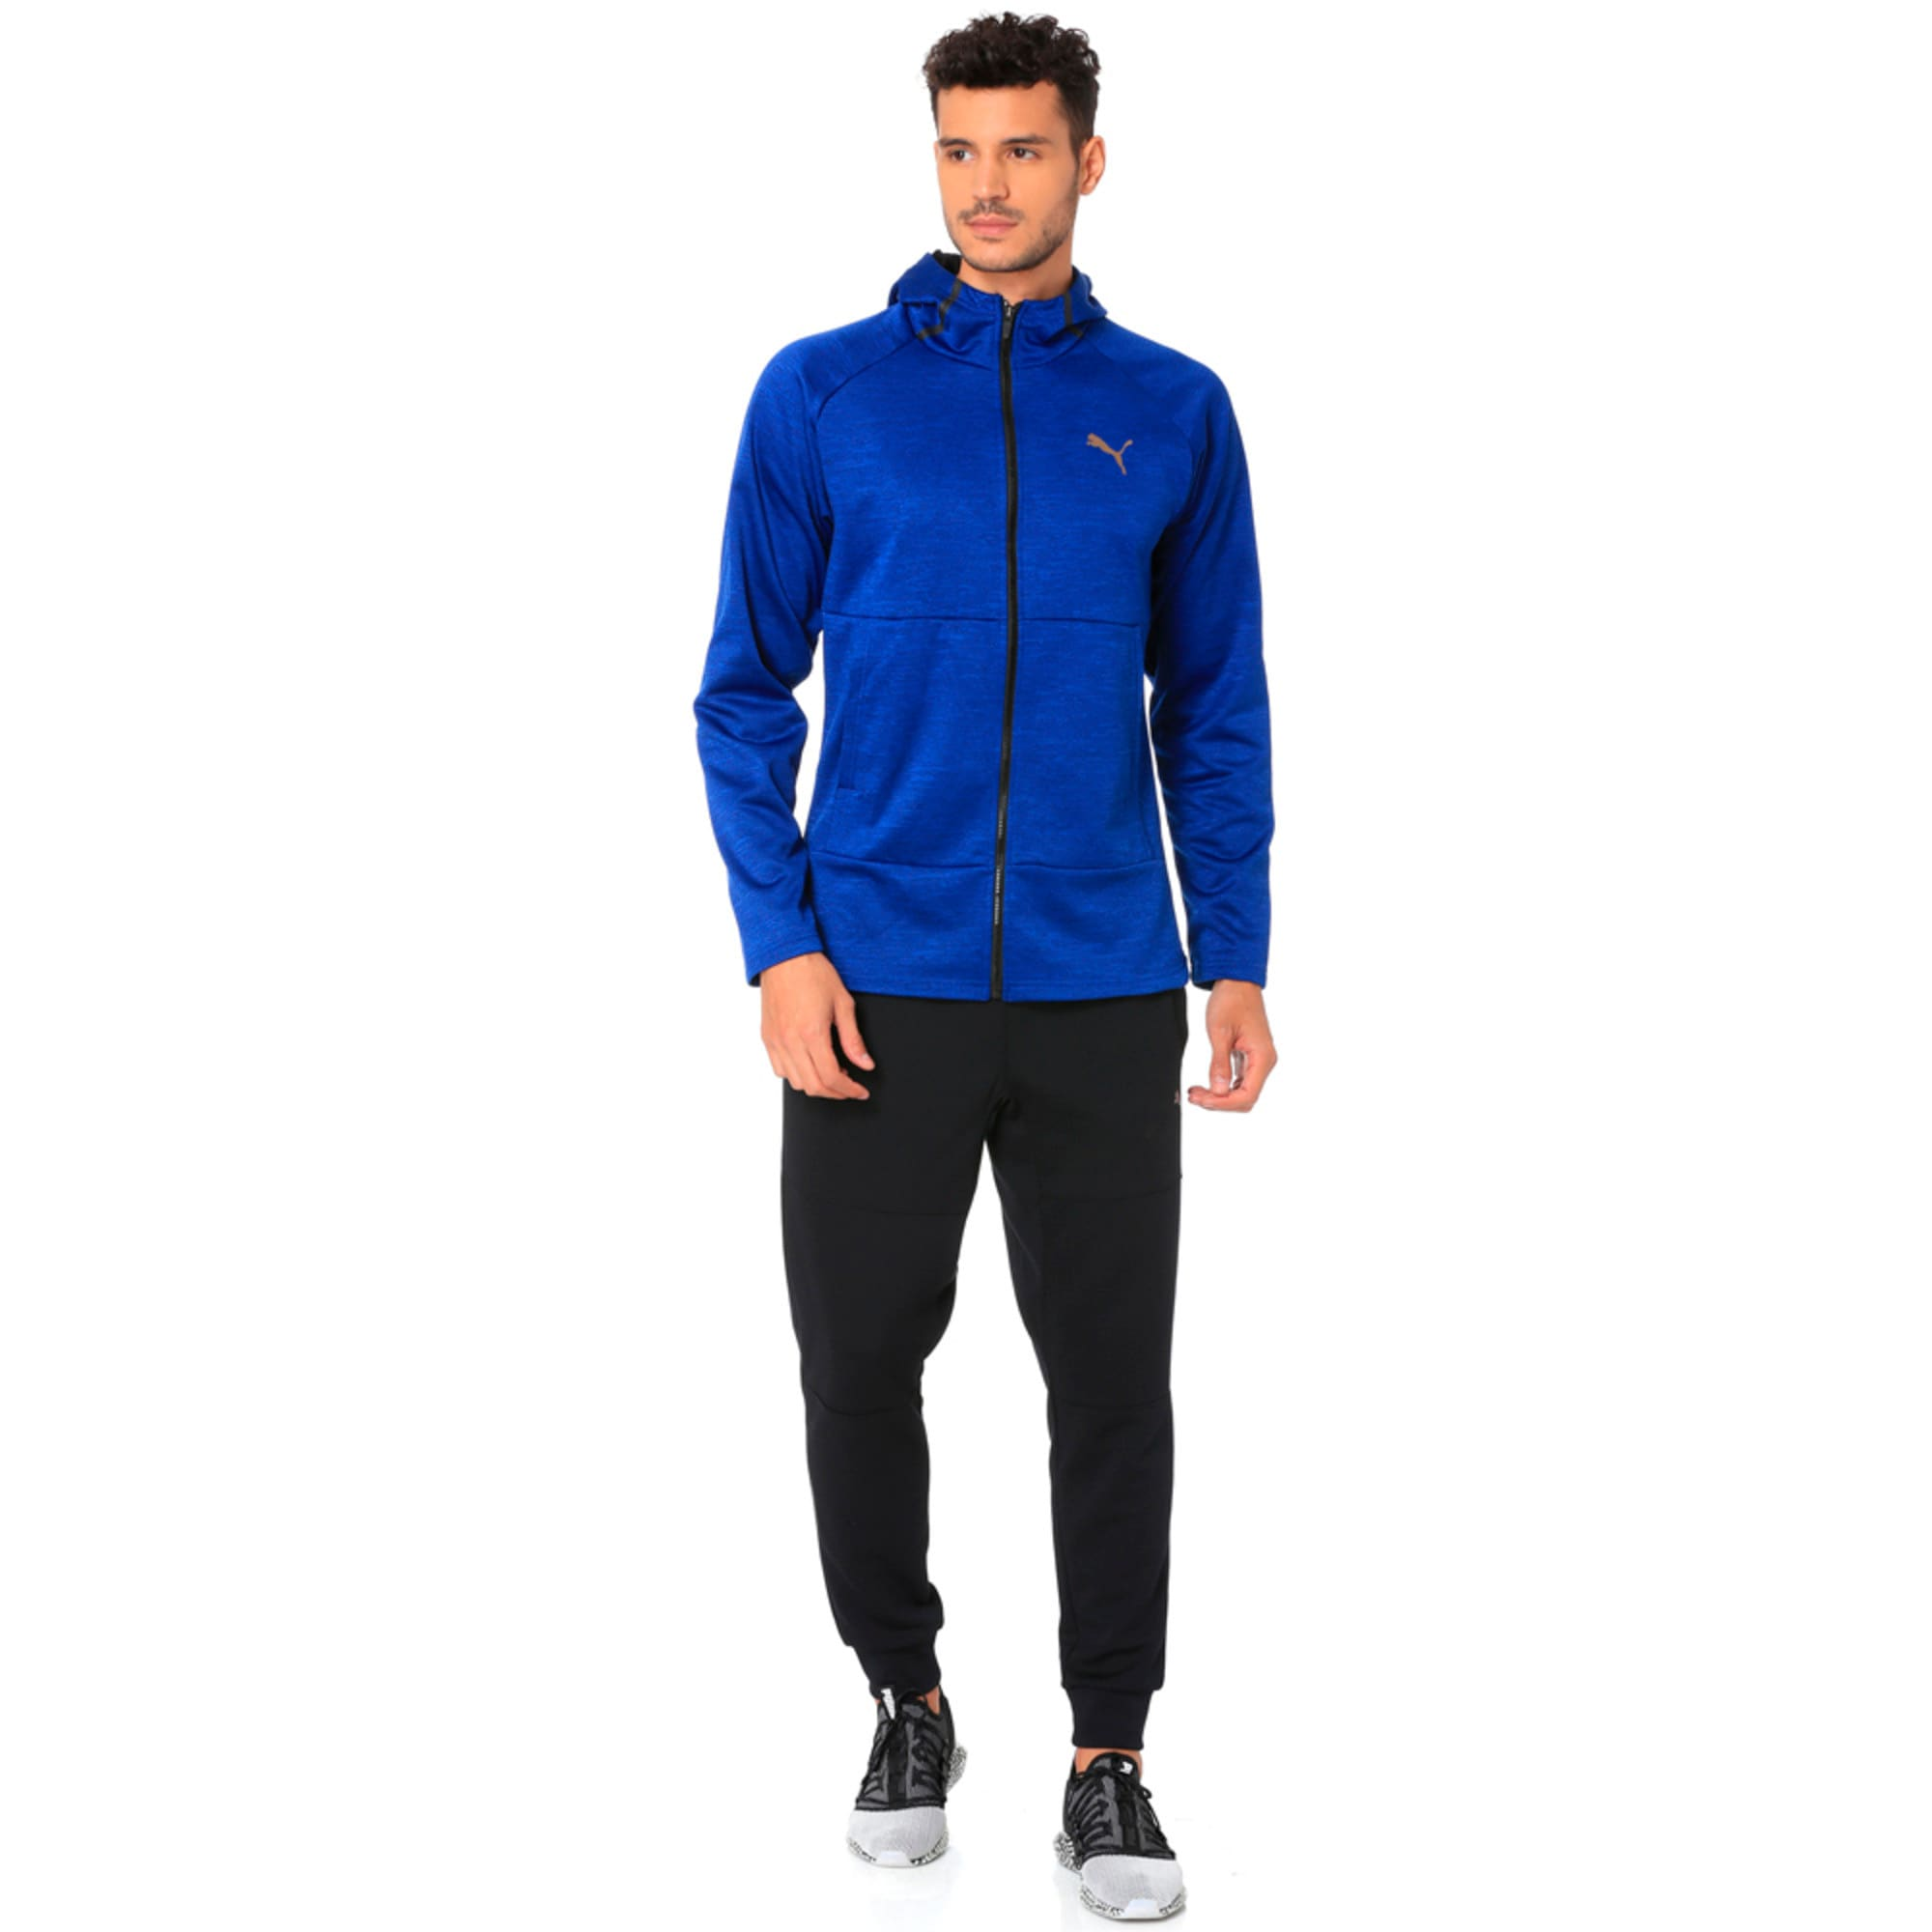 Thumbnail 3 of Q4 BND Tech Protect Jacket Puma Black He, Sodalite Blue Heather, medium-IND